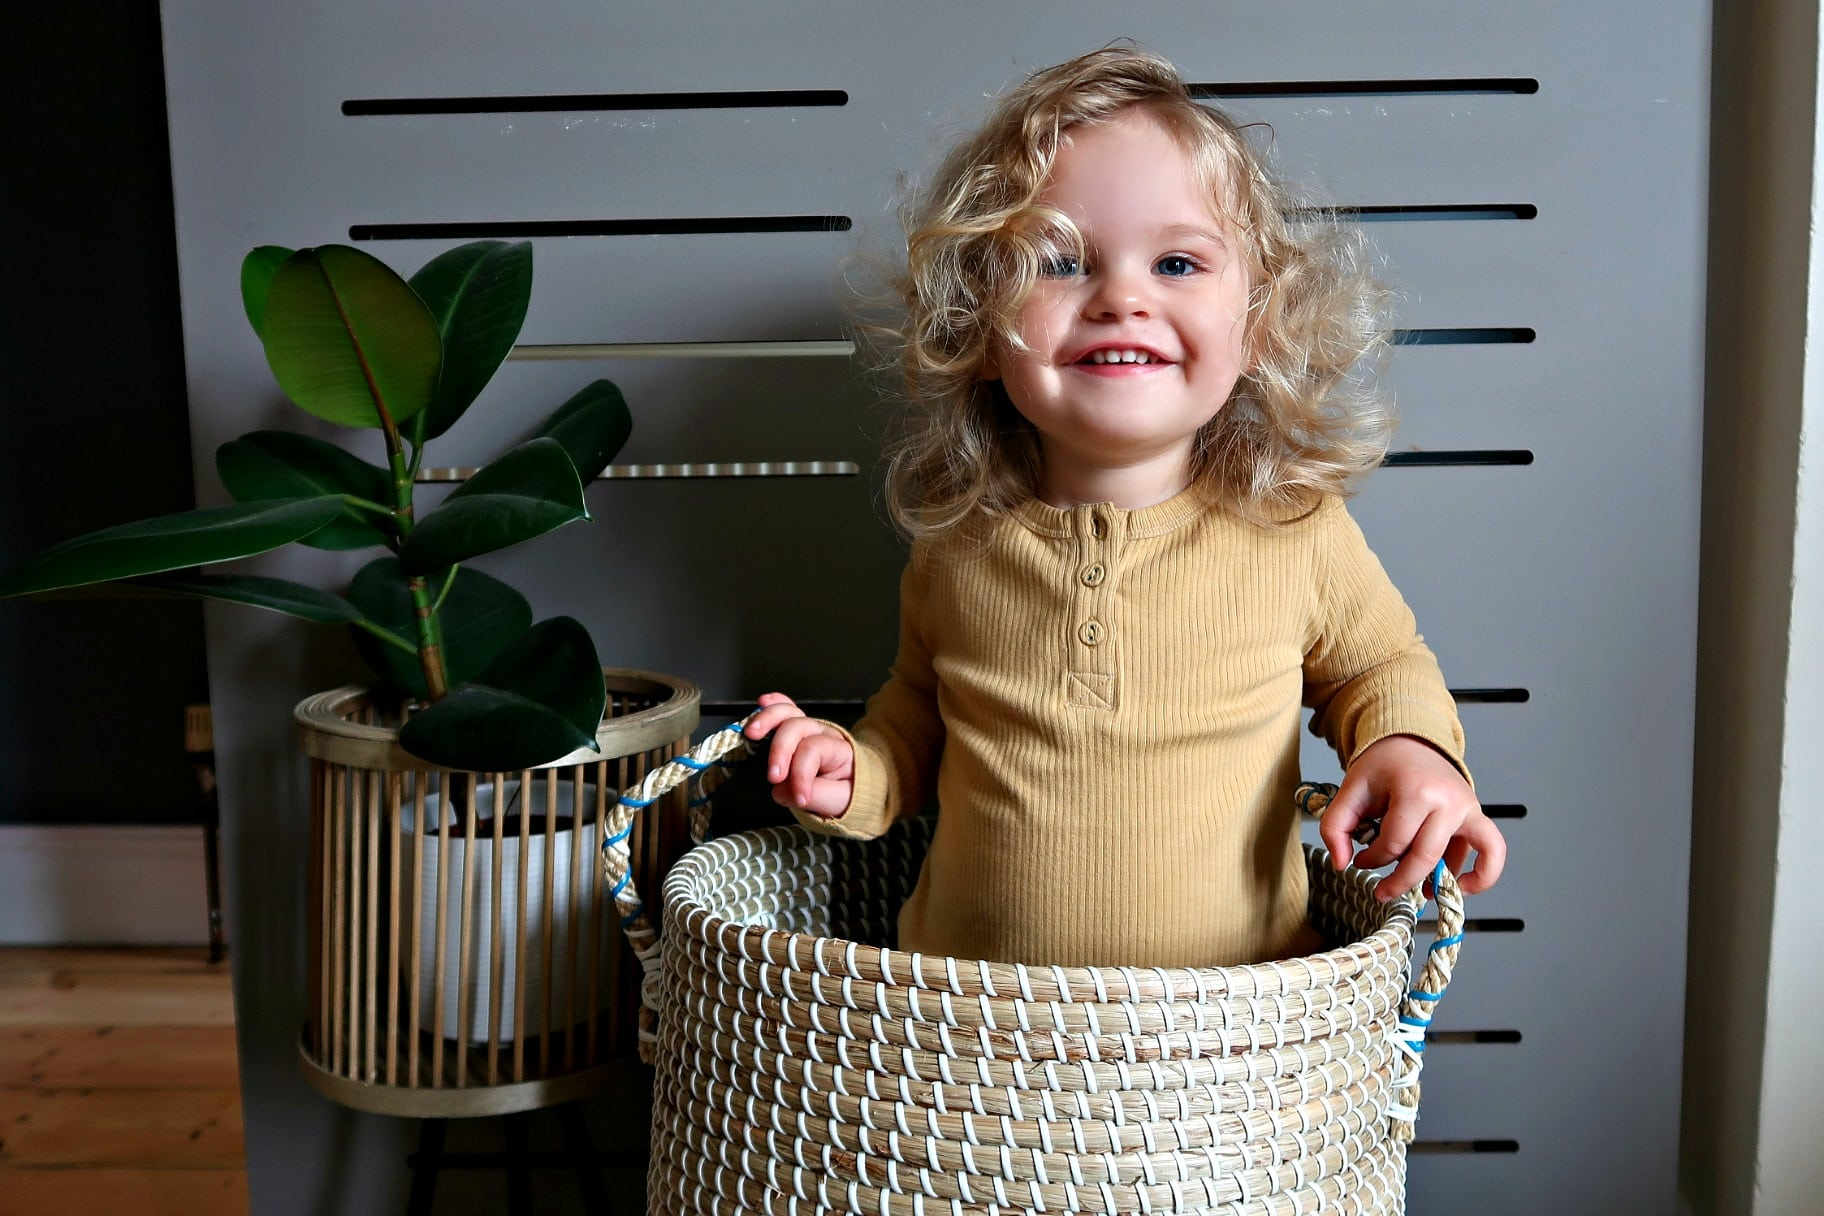 Girl with blonde hair sitting in a basket wearing an Oii mustard top.